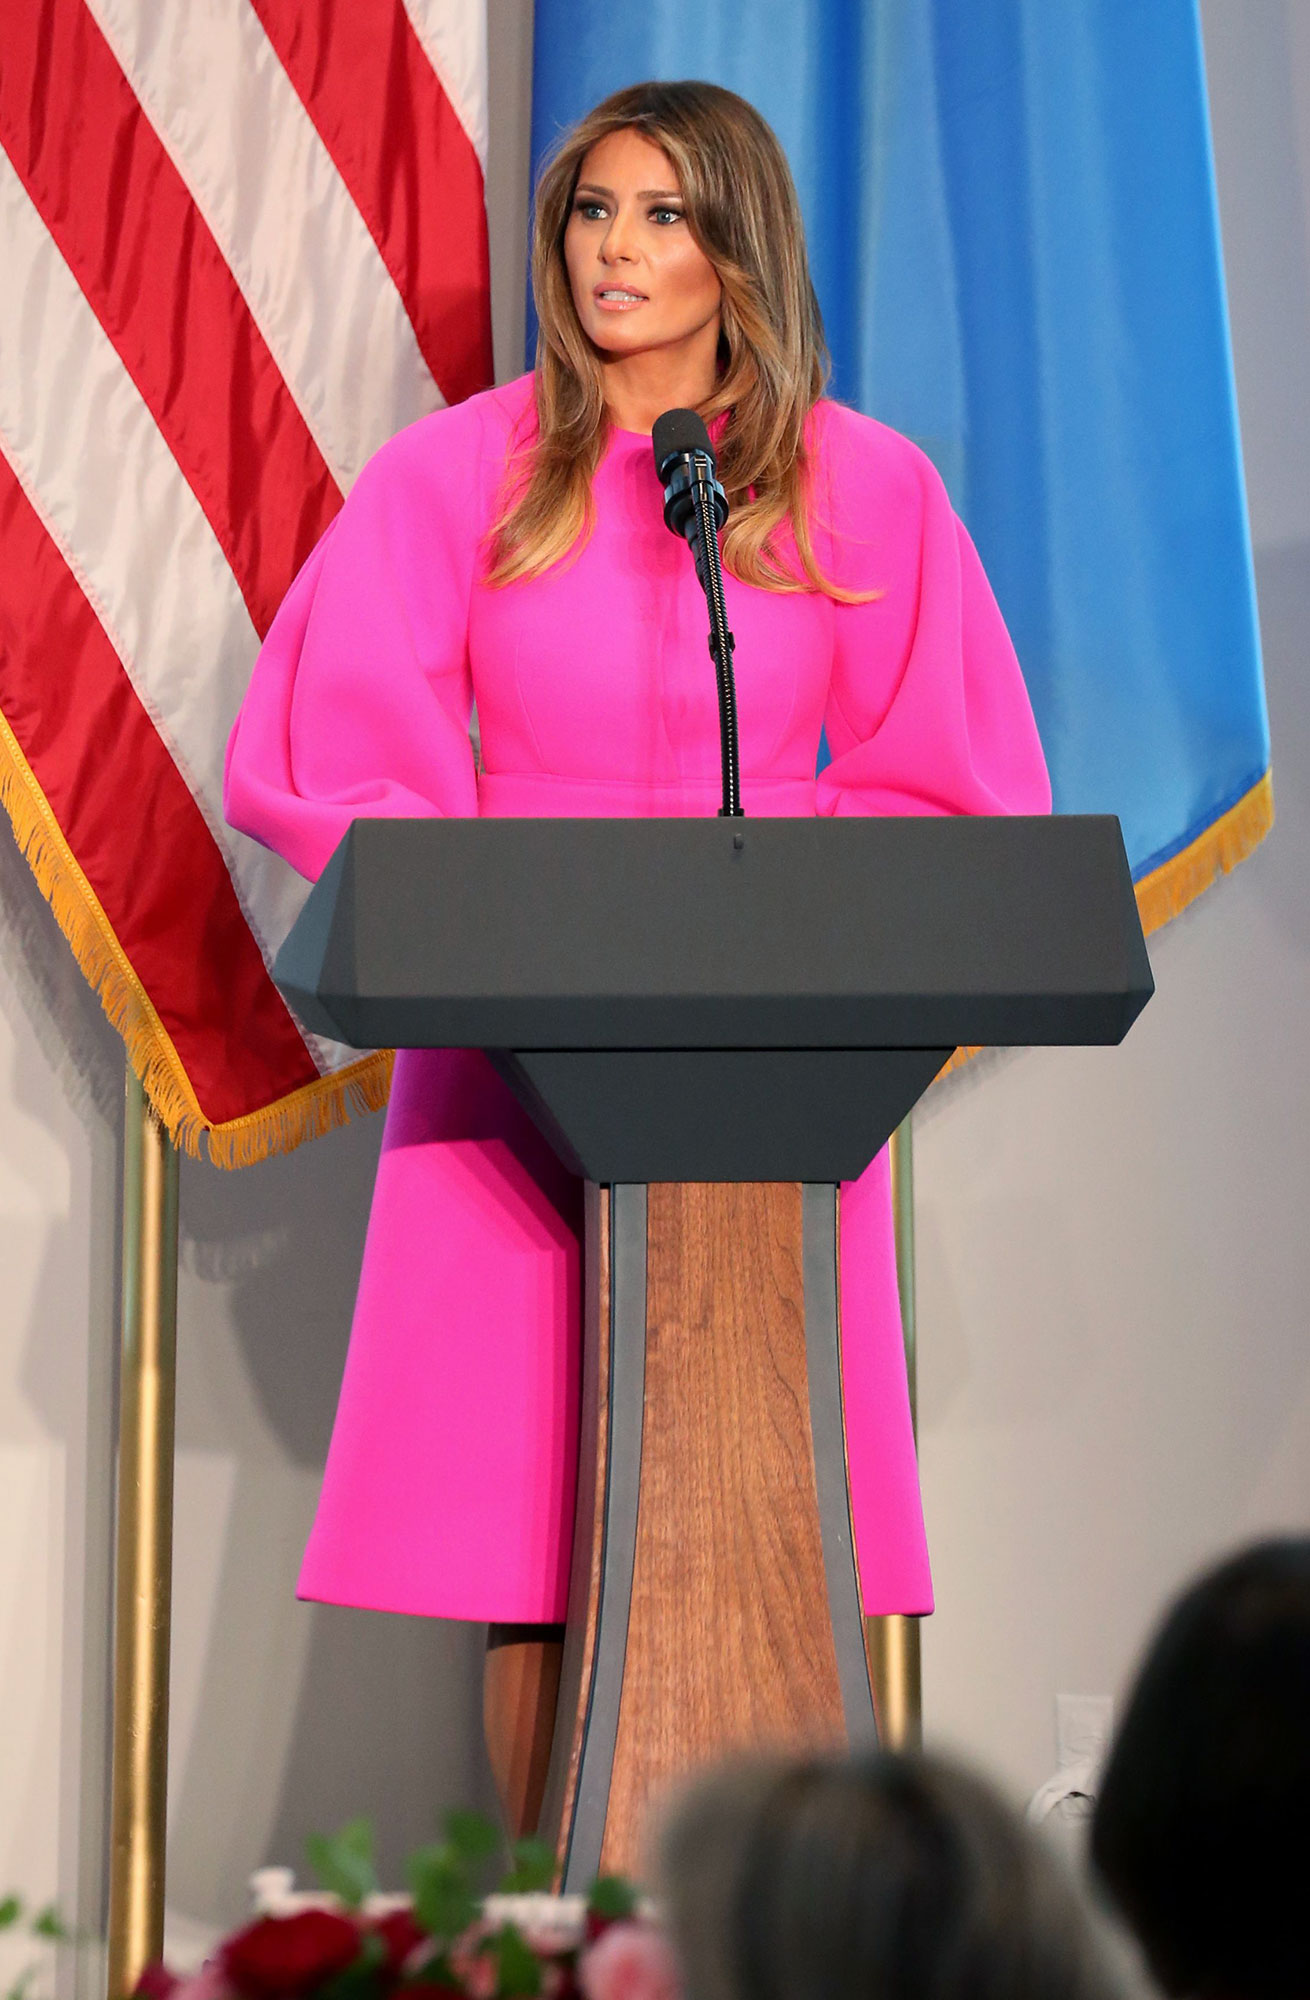 United Nations Luncheon, New York, USA - 20 Sep 2017